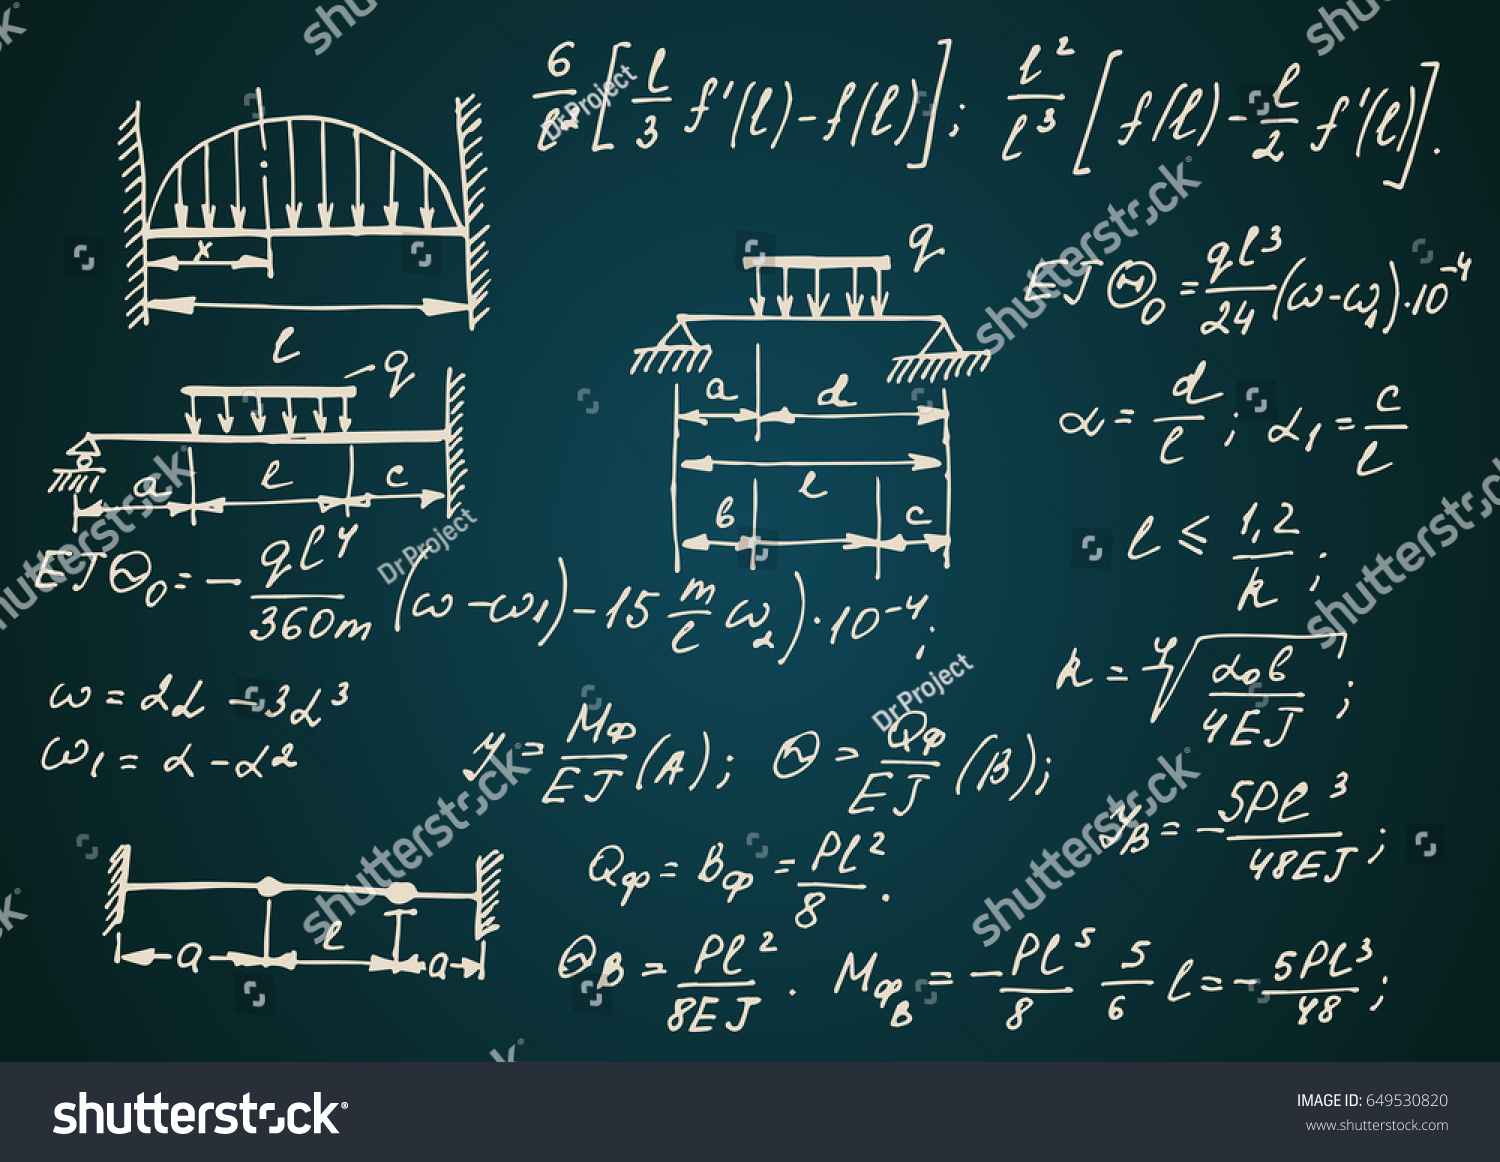 Vintage Physical Notation Equations Figures Schemes Stock Vector Circuit Diagram On Electronic Symbols With The Plots And Other Calculations